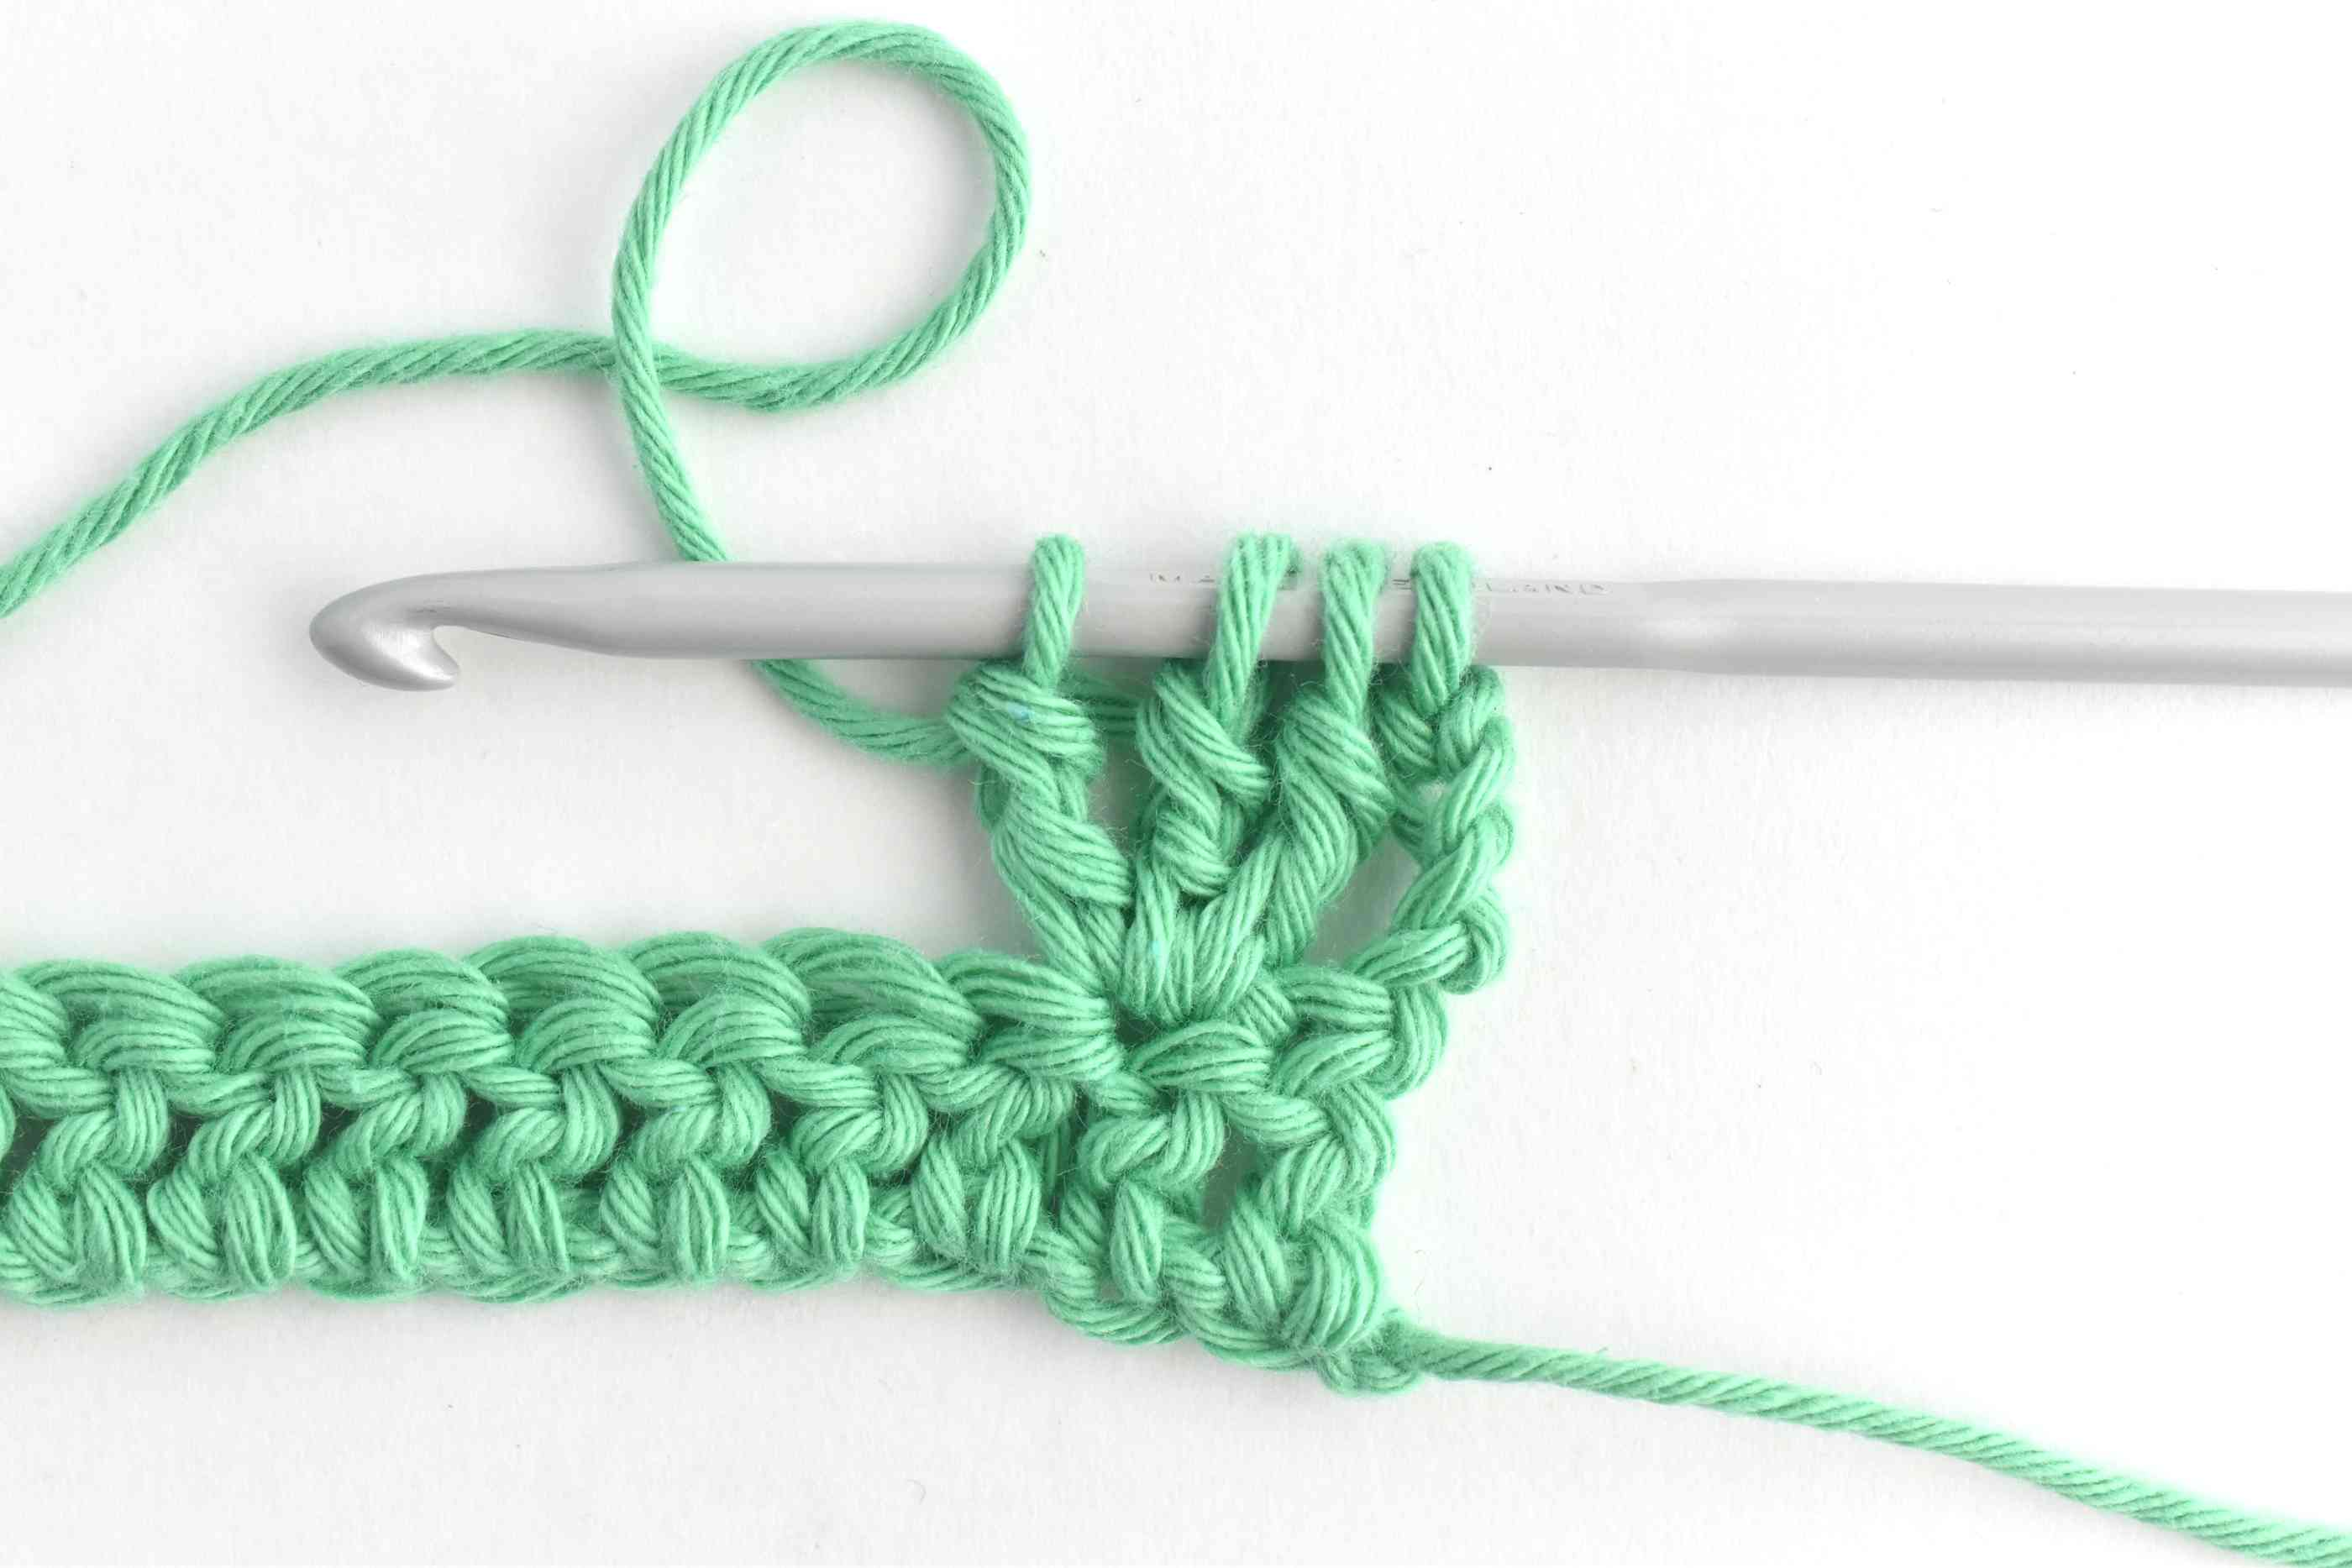 Make Two More Partial Treble Crochets (4 Loops on Hook)